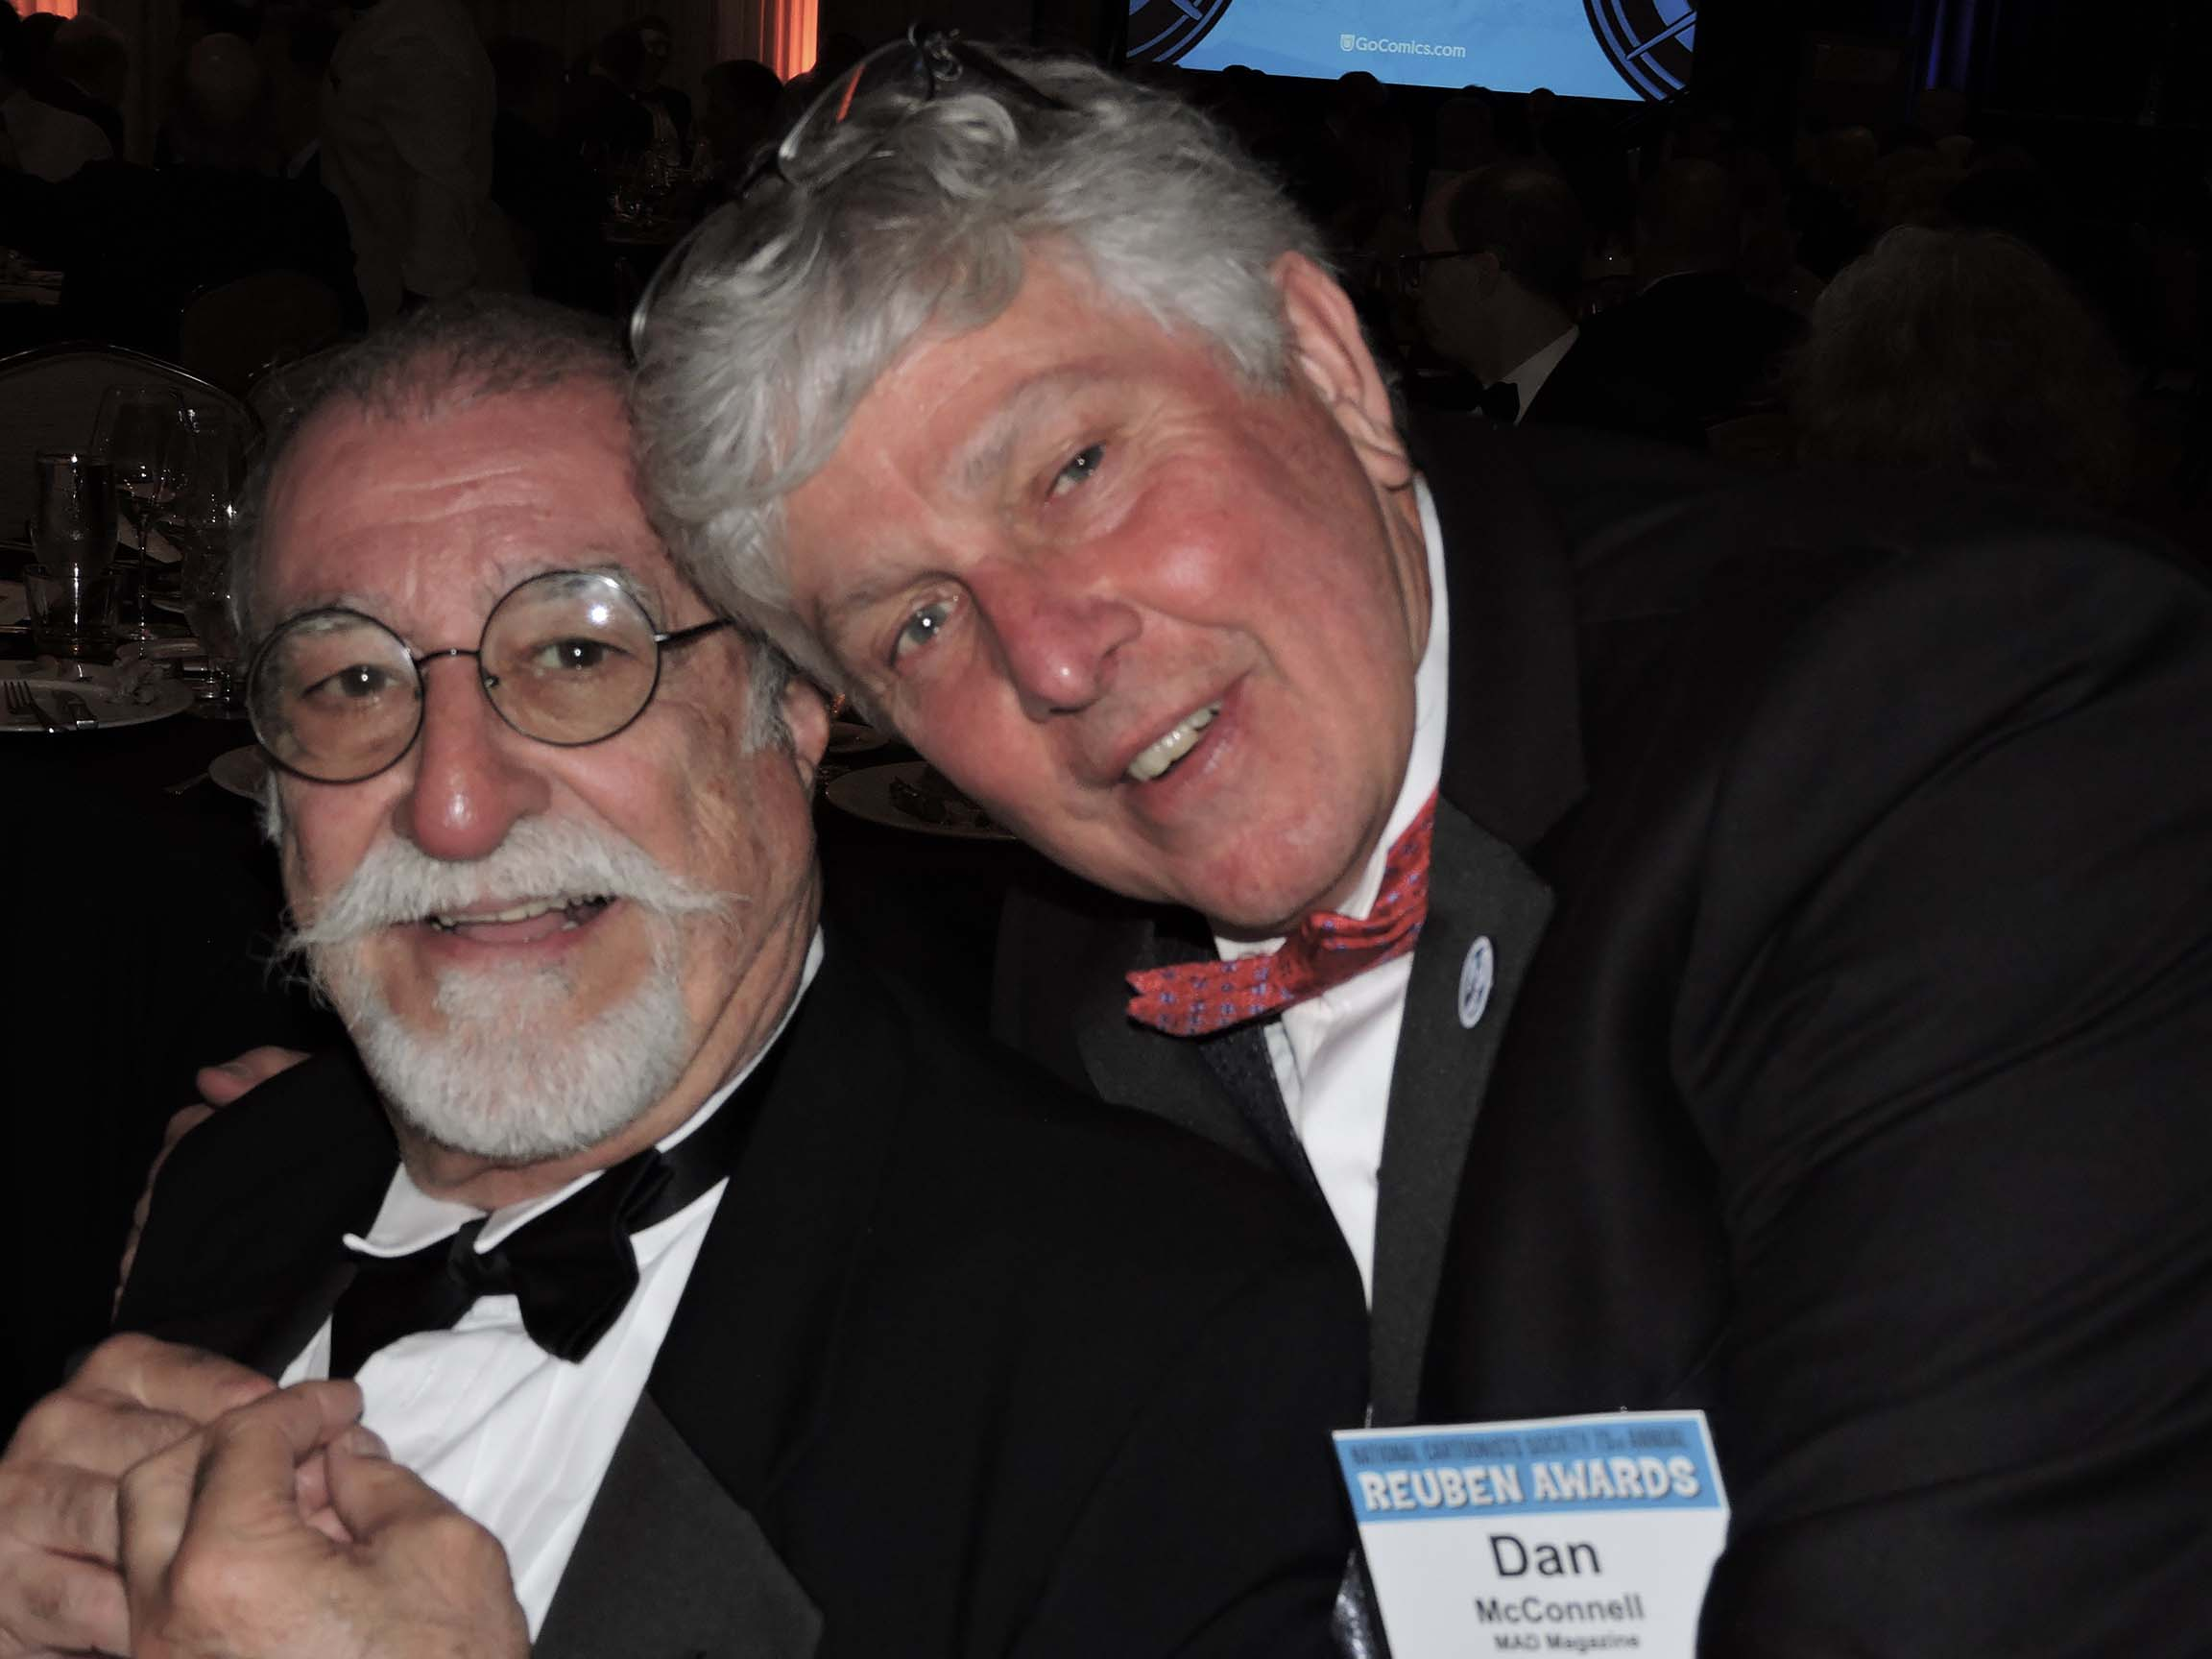 Sergio Aragones and Dan McConnell